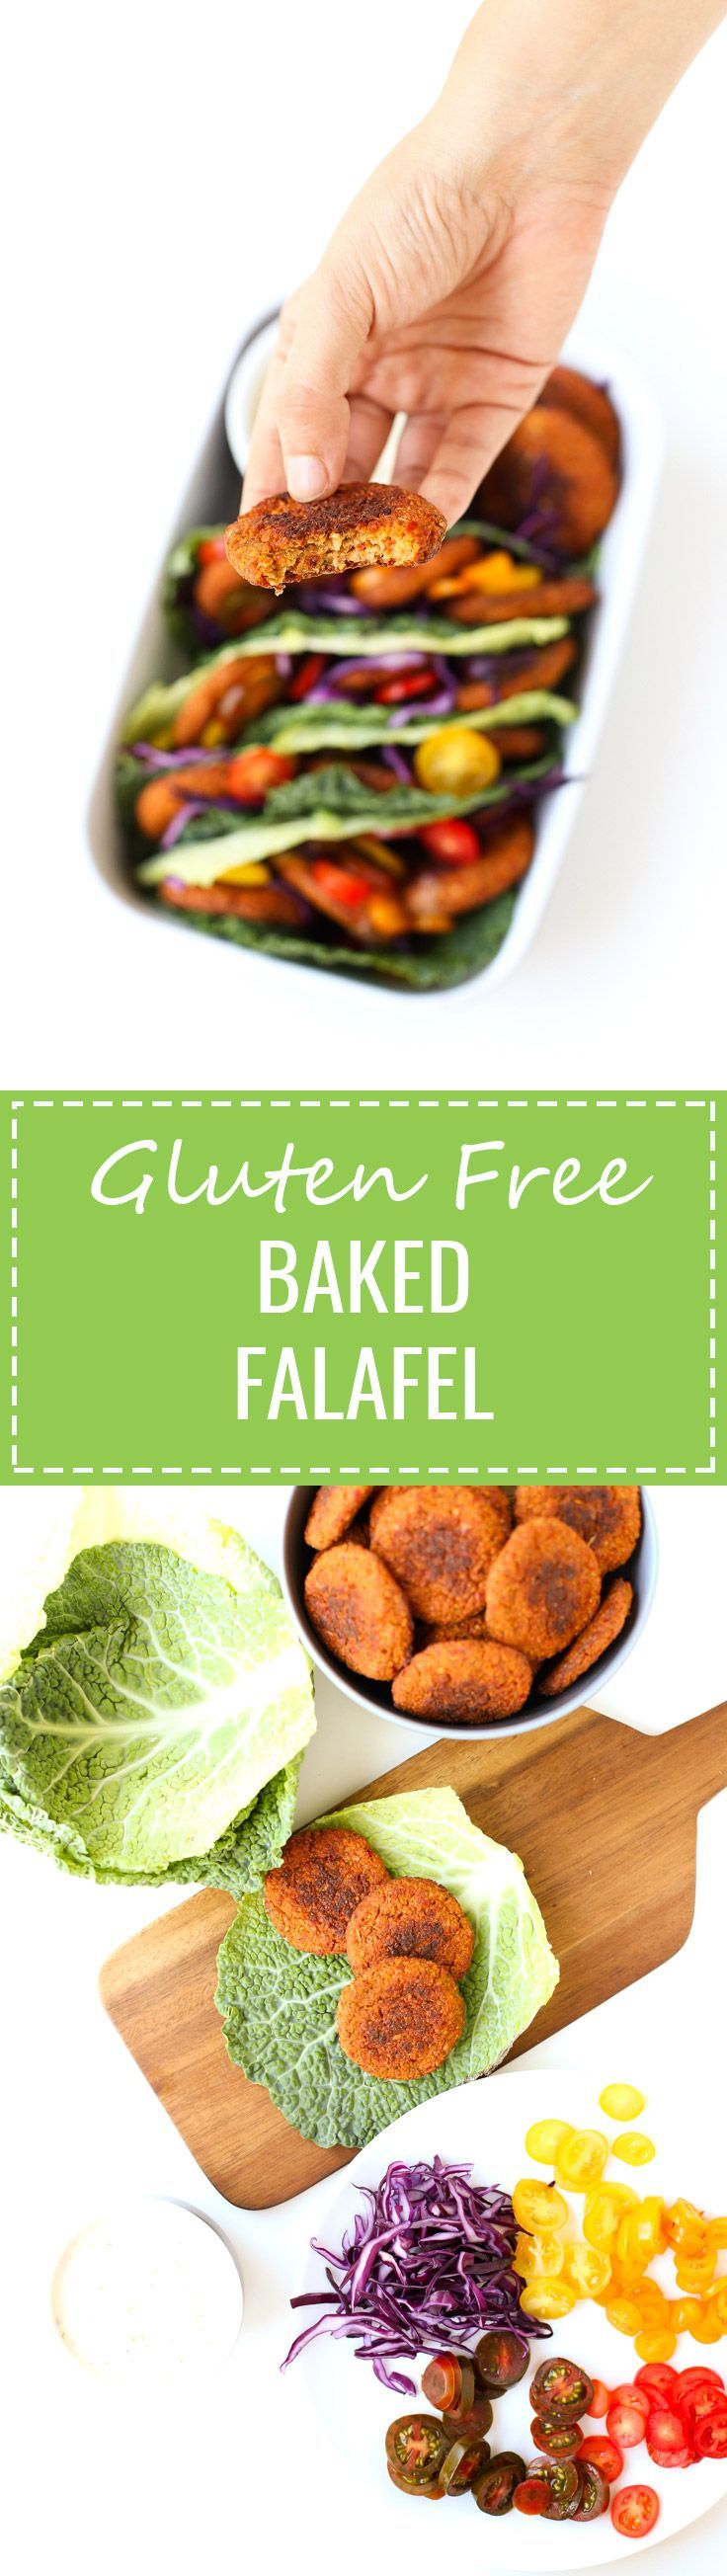 Gluten Free Baked Falafel - I'm in love with this gluten-free baked falafel, it's so delicious! I usually serve it with raw veggies and homemade vegan yogurt sauce.